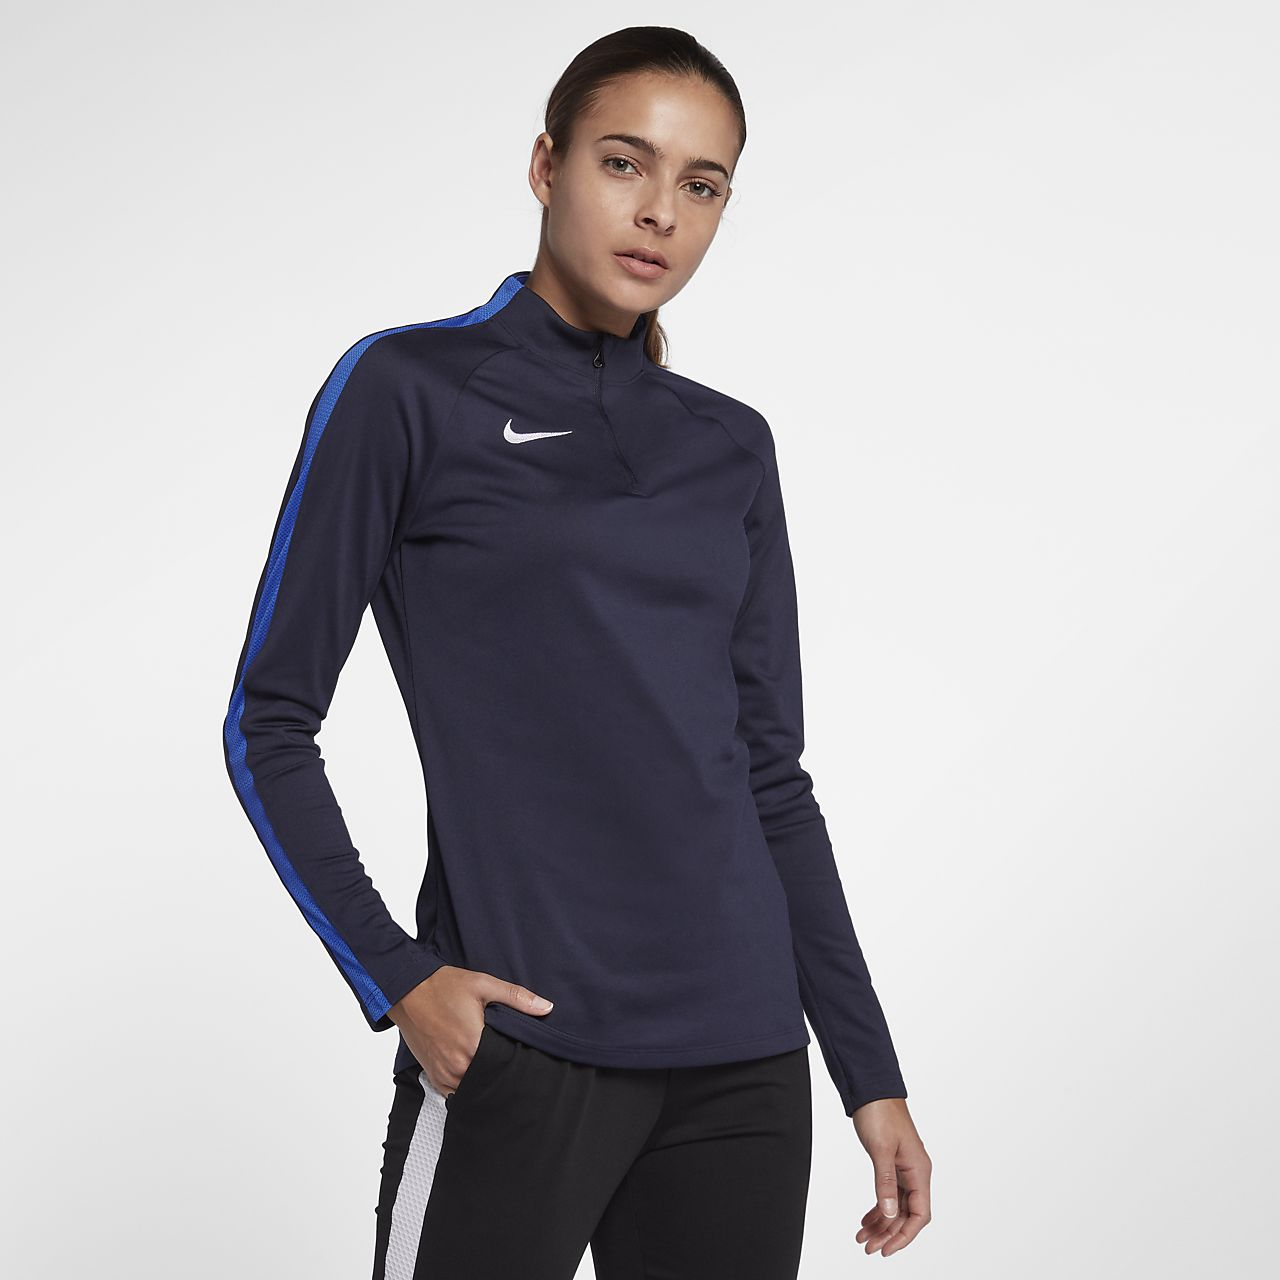 ac08d916 Nike Dri-FIT Academy Drill Women's Long-Sleeve Football Top. Nike.com AU